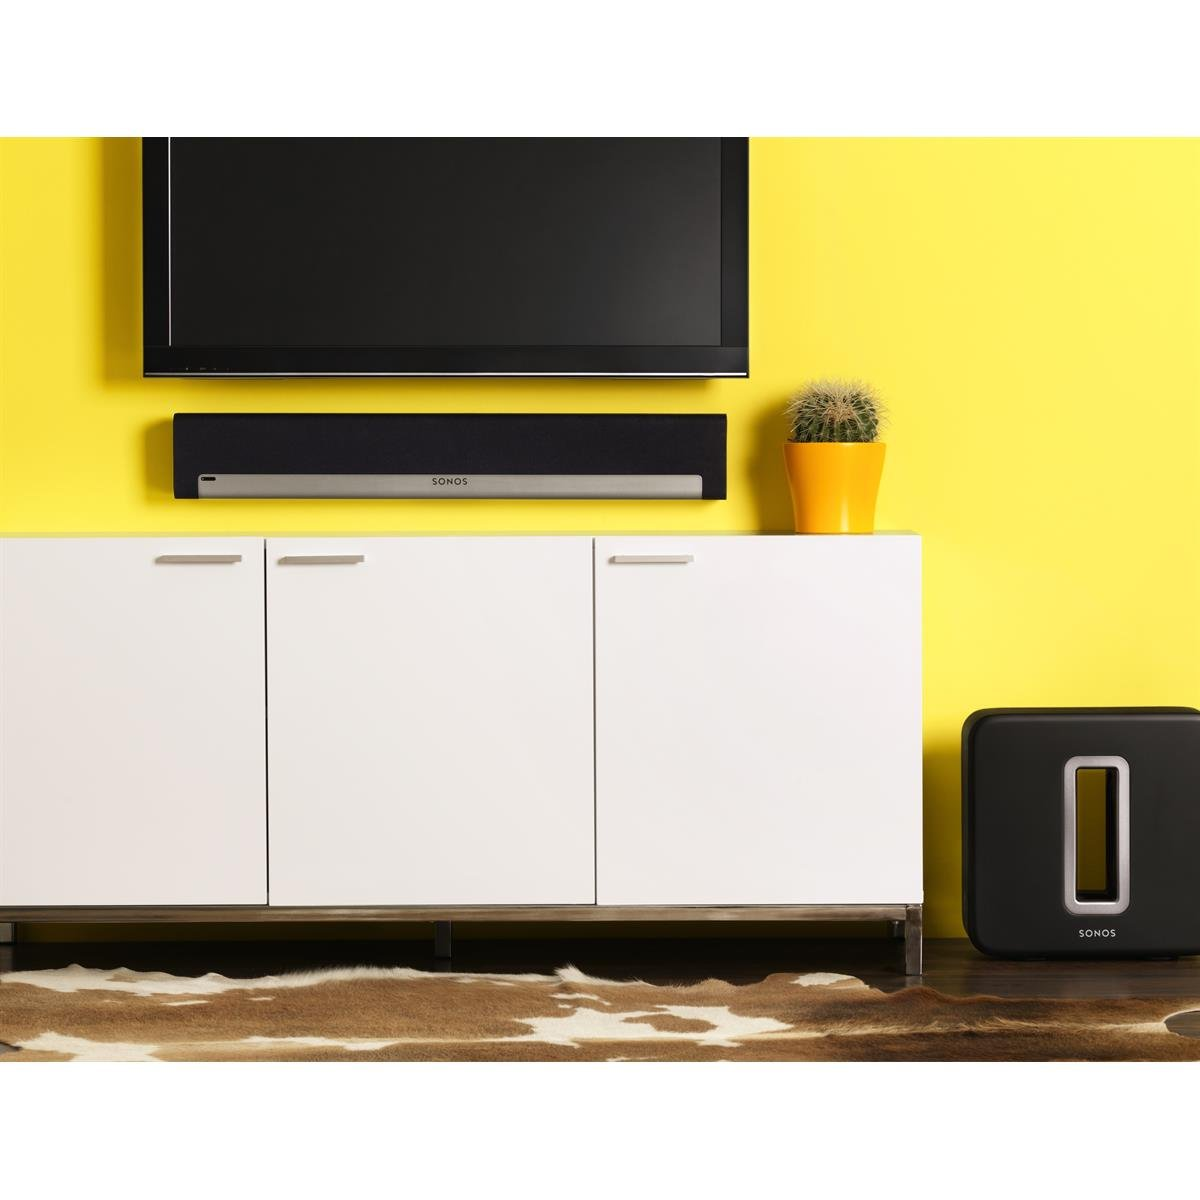 Sonos PLAYBAR Multi-Room Whole House Home Theater System with PLAY:1 Speakers, PLAY:3 Speaker, and SUB Wireless Subwoofer (White) by Sonos (Image #2)